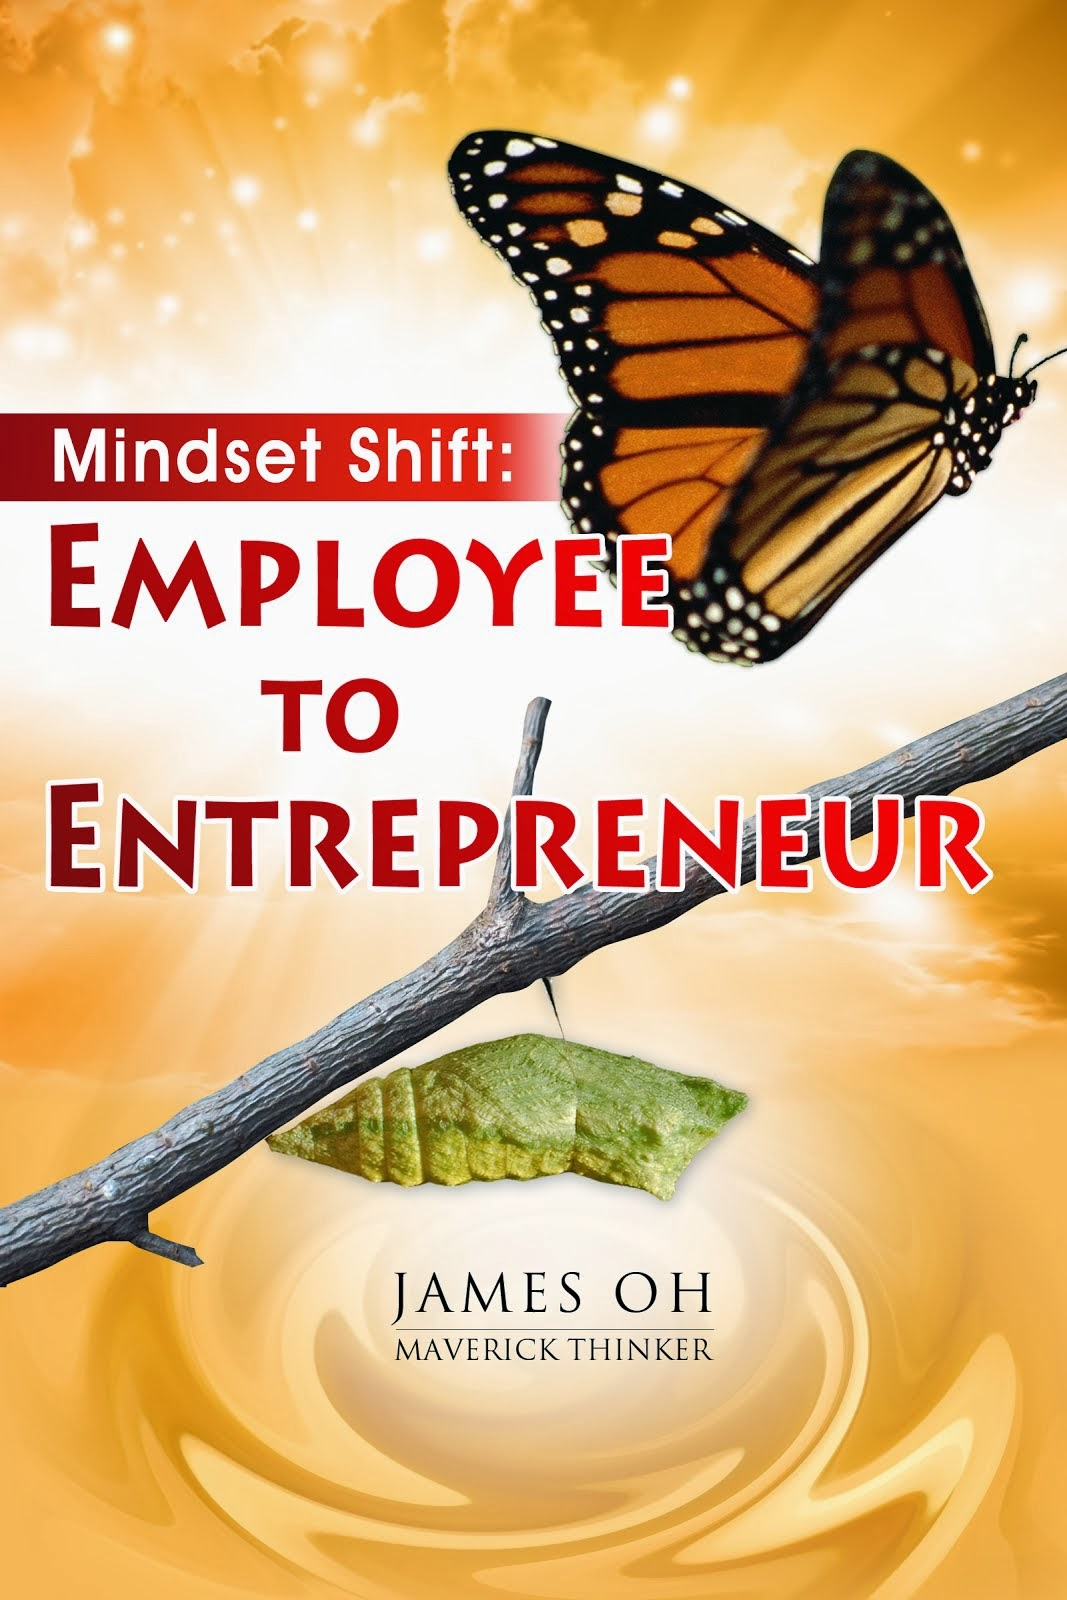 MINDSET SHIFT: EMPLOYEE TO ENTREPRENEUR